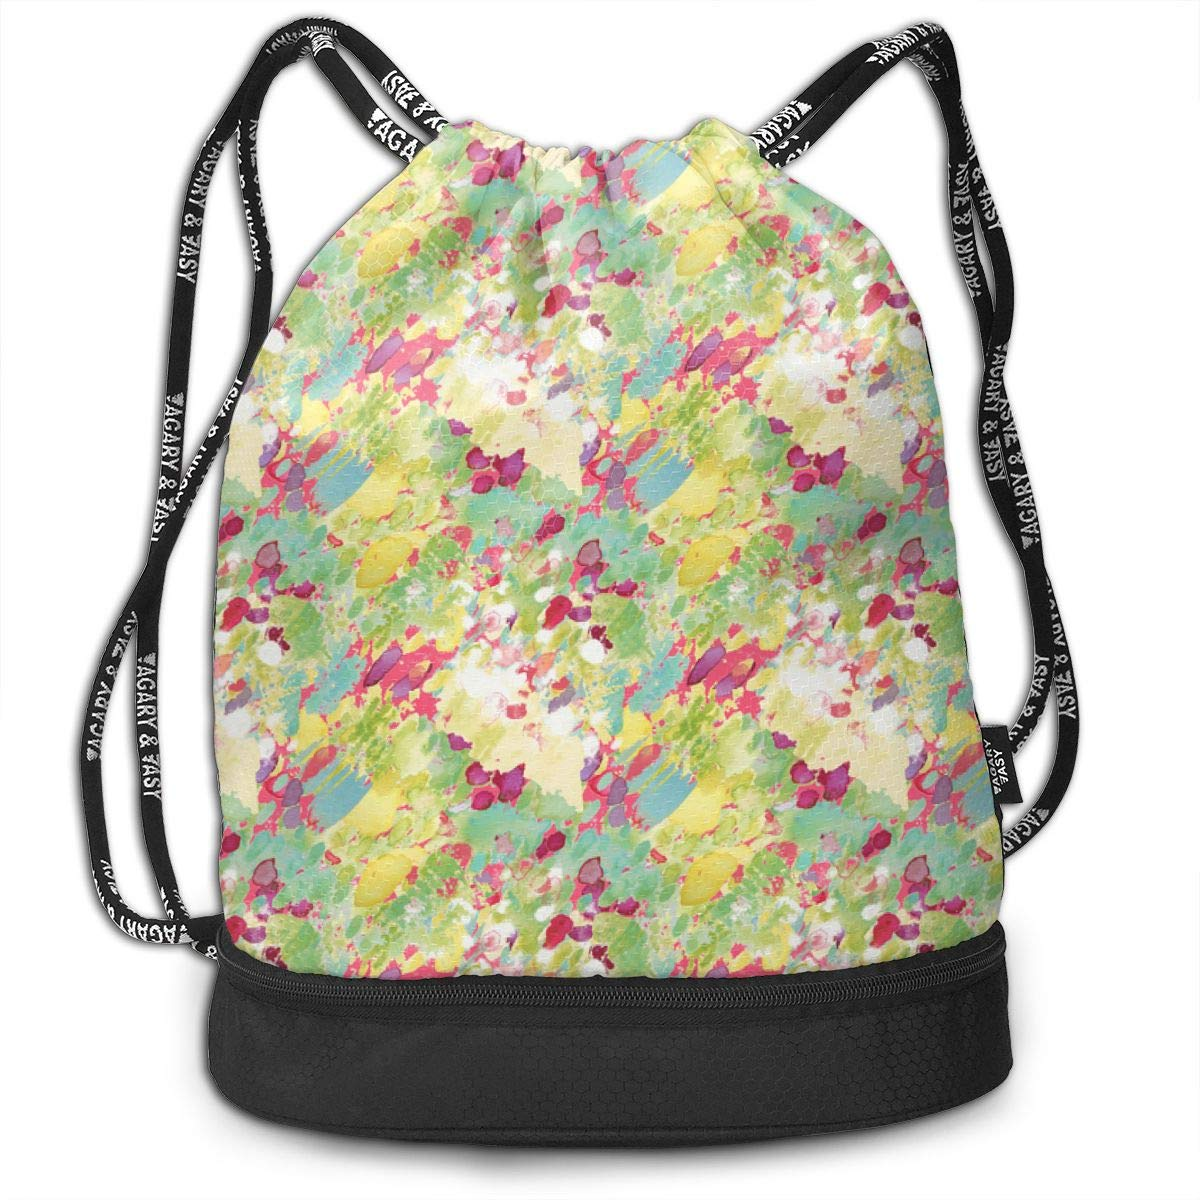 Frolicking Fields Drawstring Backpack Sports Athletic Gym Cinch Sack String Storage Bags for Hiking Travel Beach